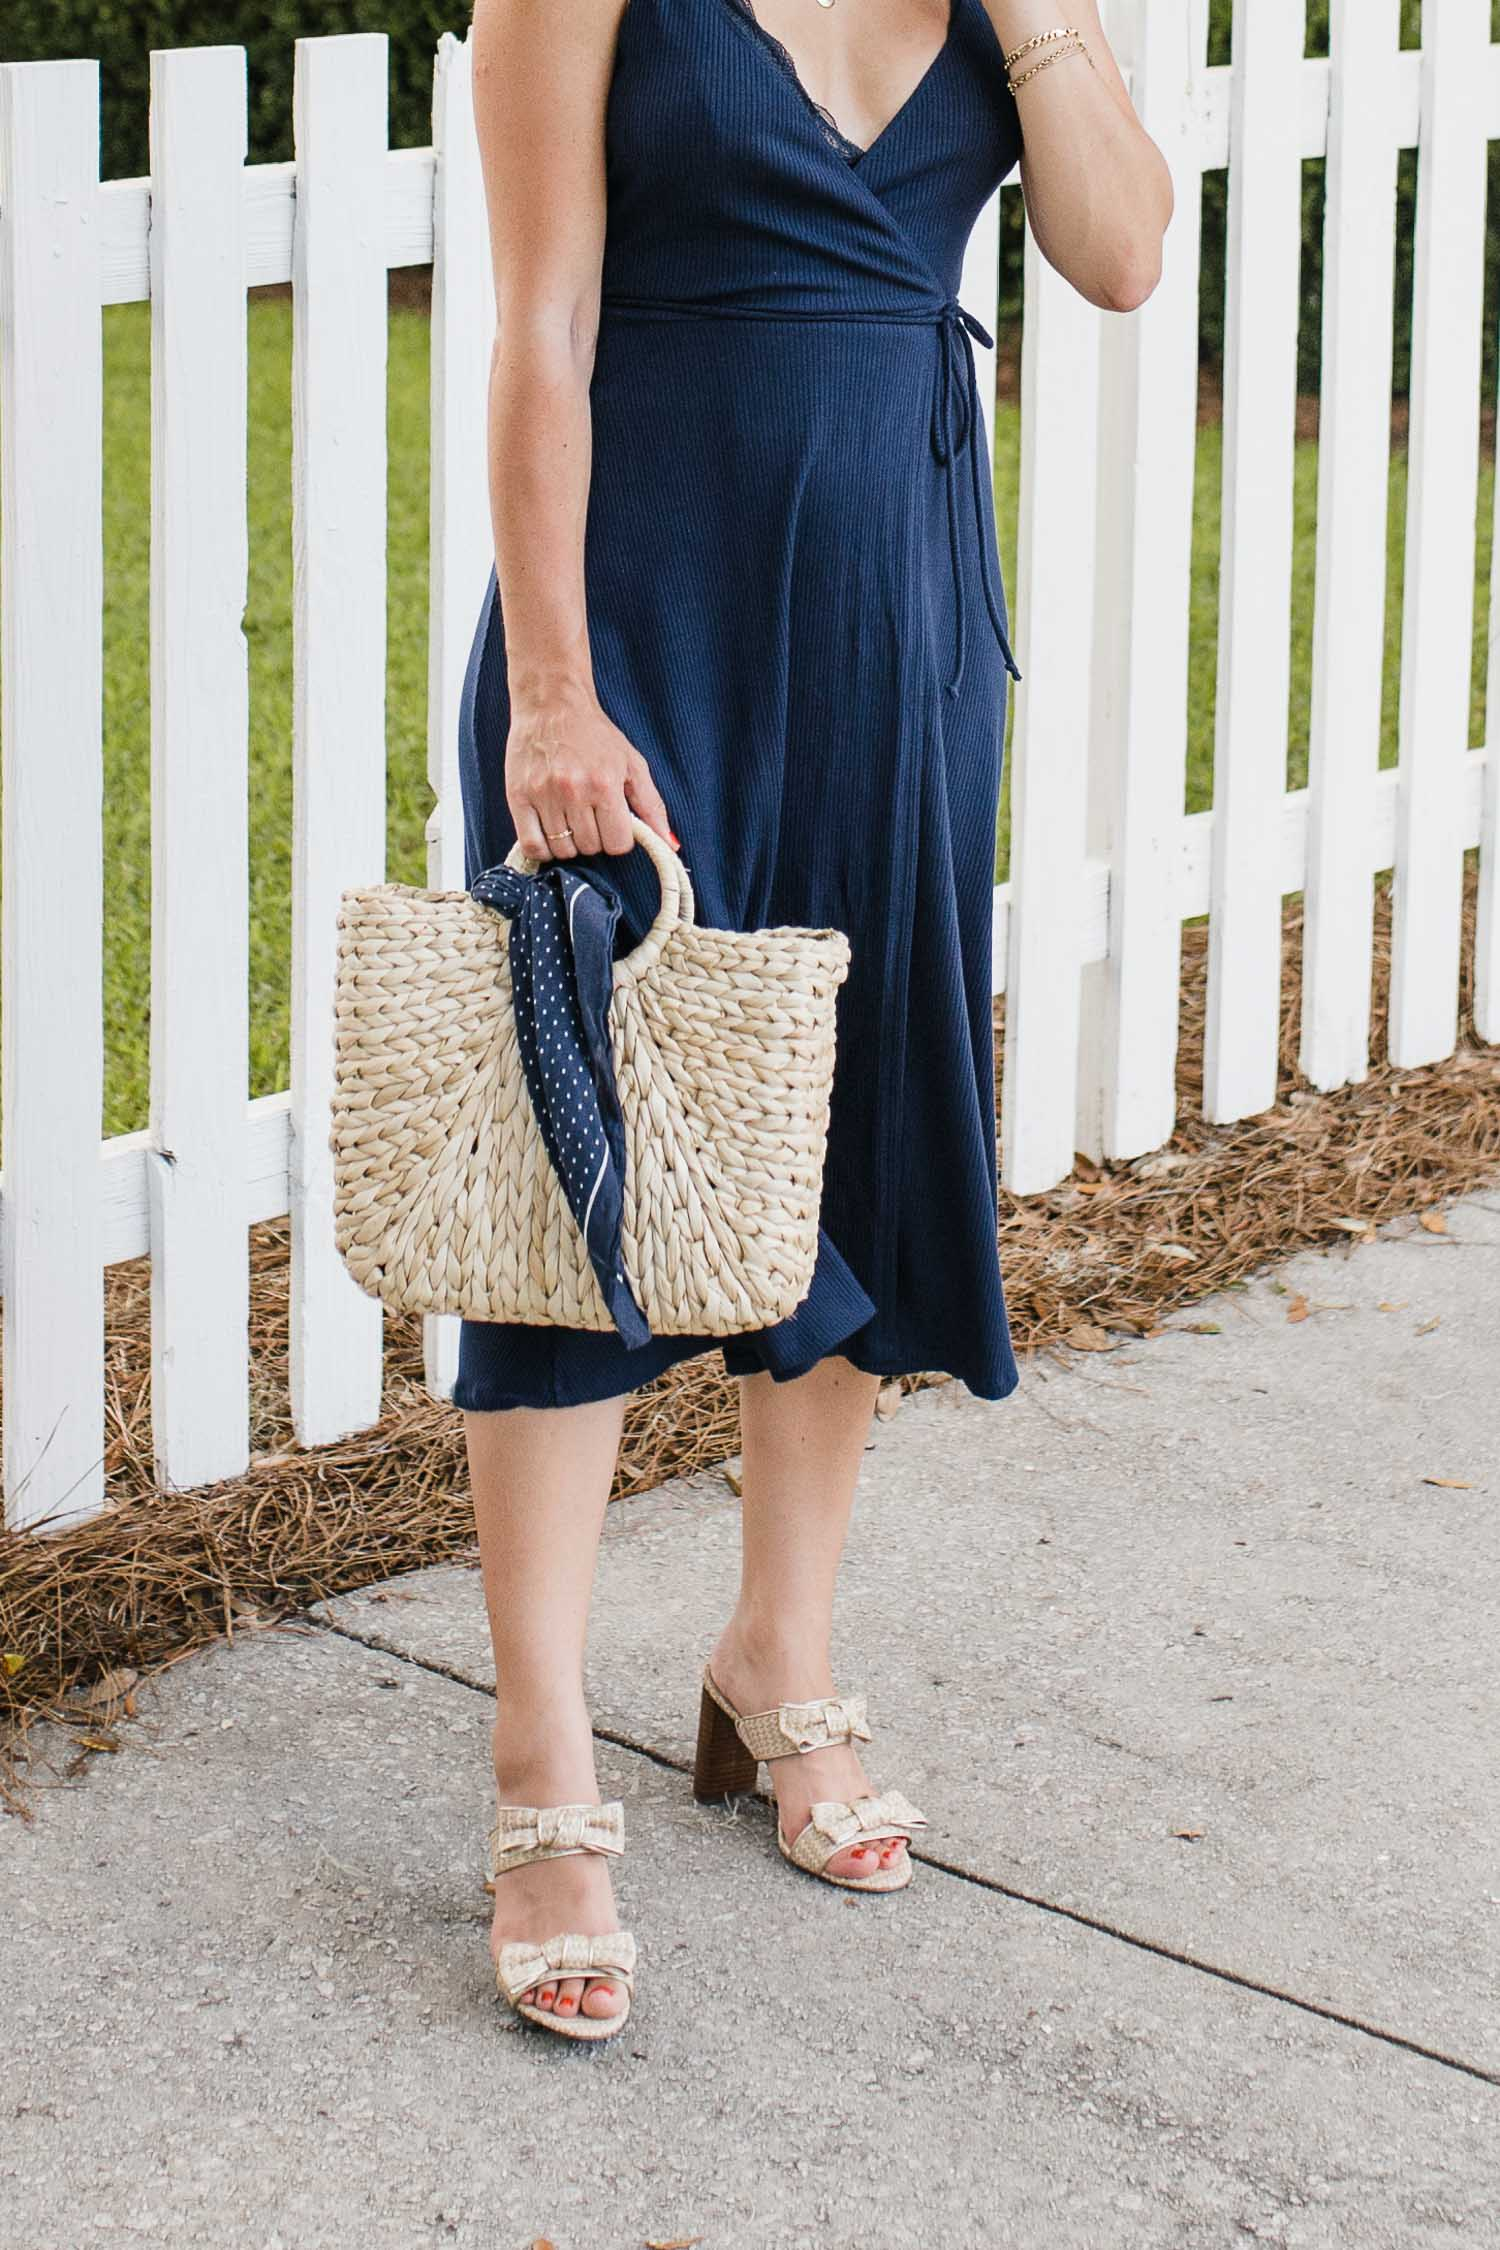 REFORMATION DRESS, ANN TAYLOR SANDALS, HAT ATTACK BAG